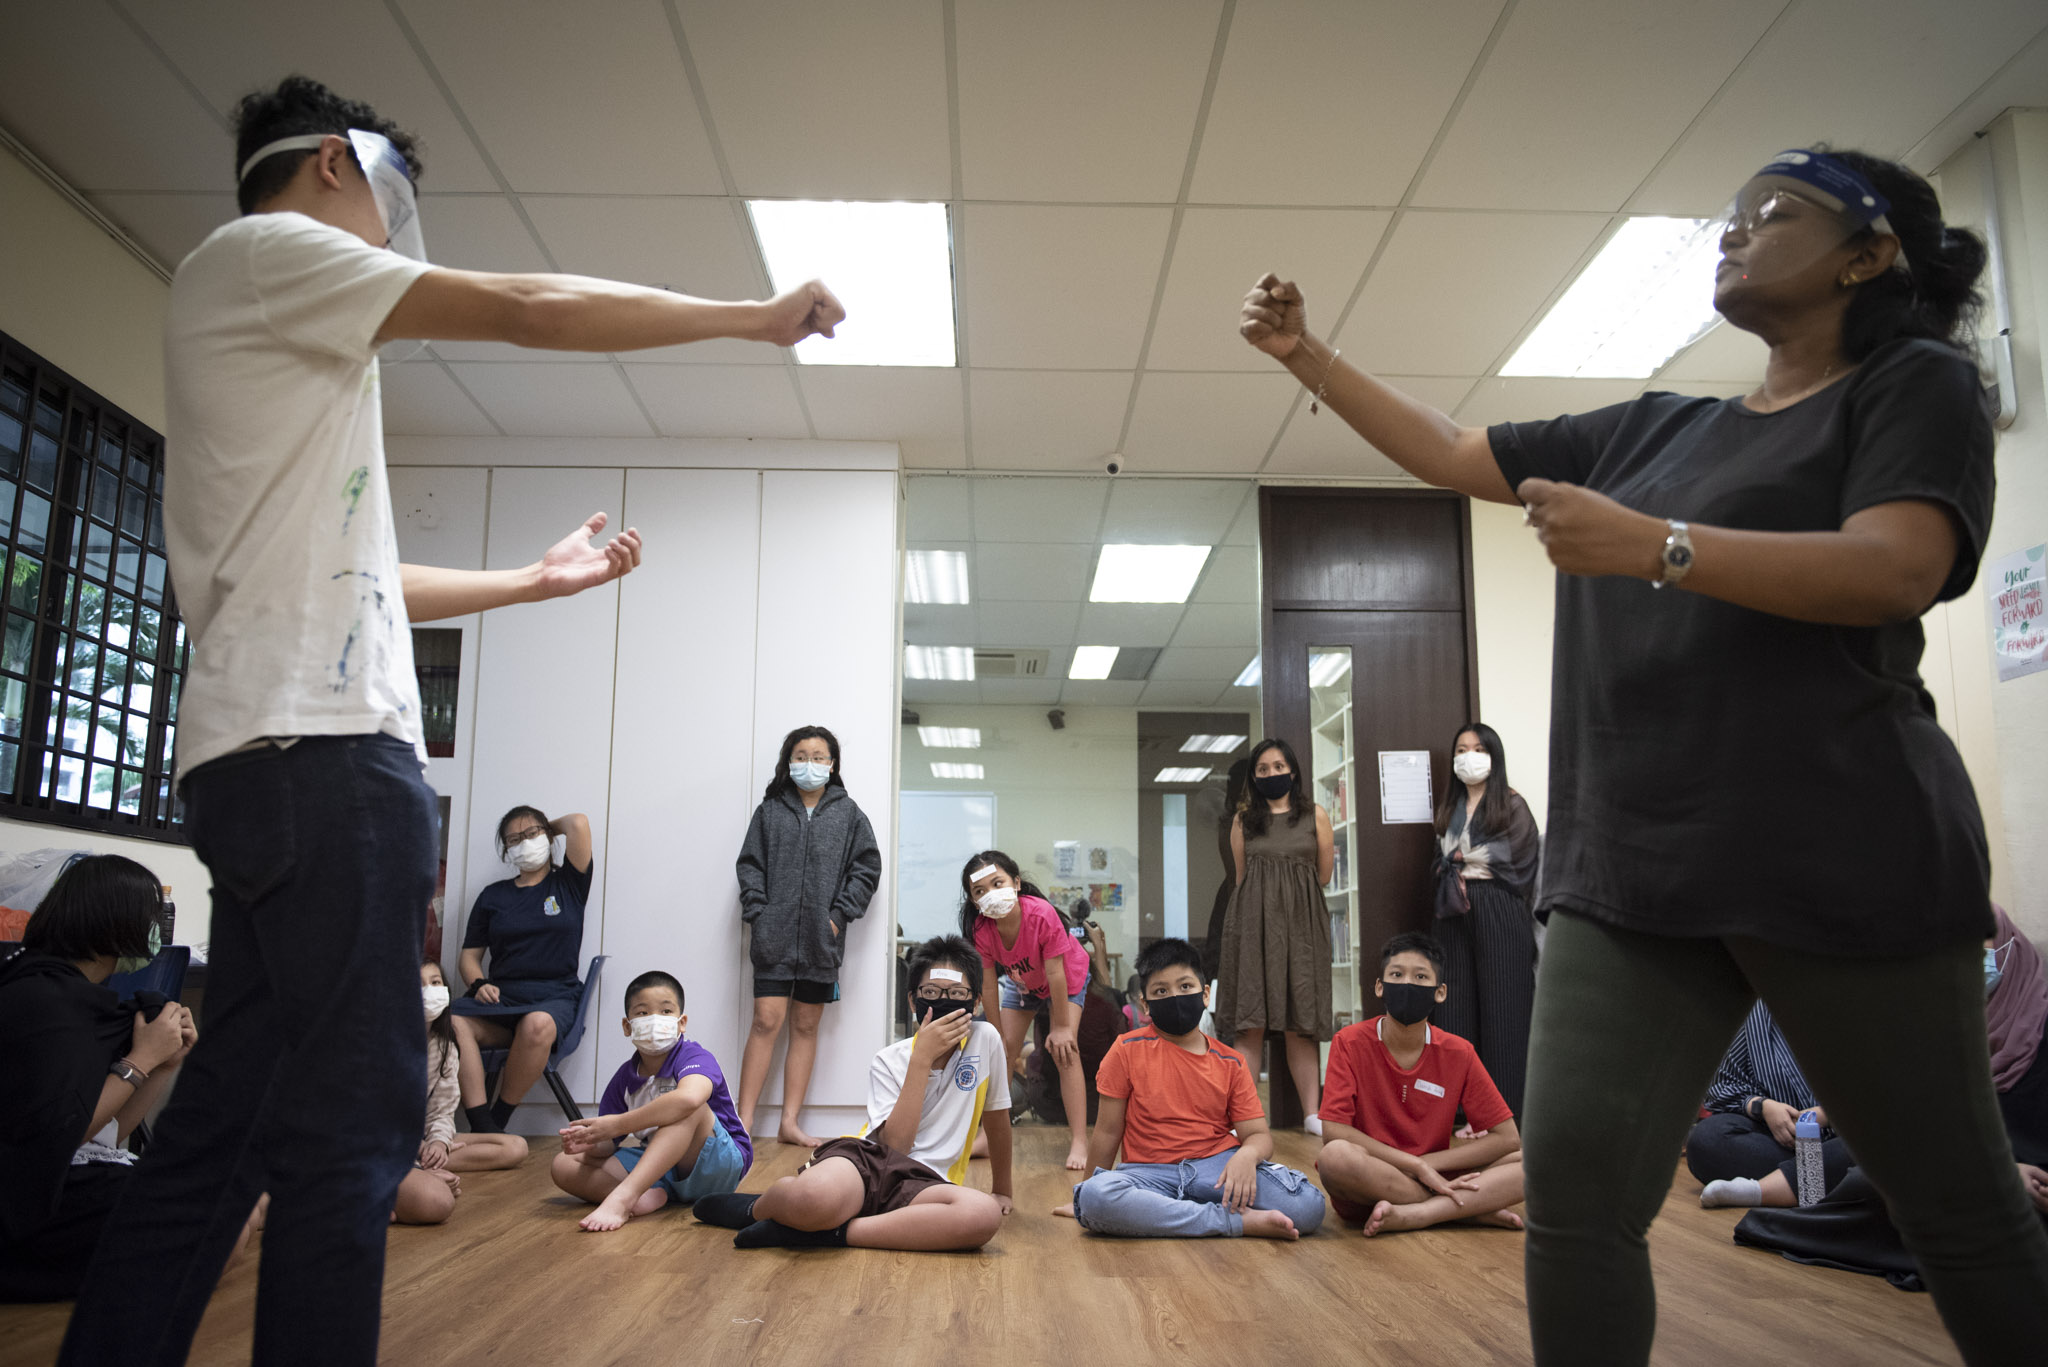 As part of Theatre Thursdays, CampusImpact engaged Pangdemonium to lead a four-week workshop to help children develop speech, confidence and presentation skills